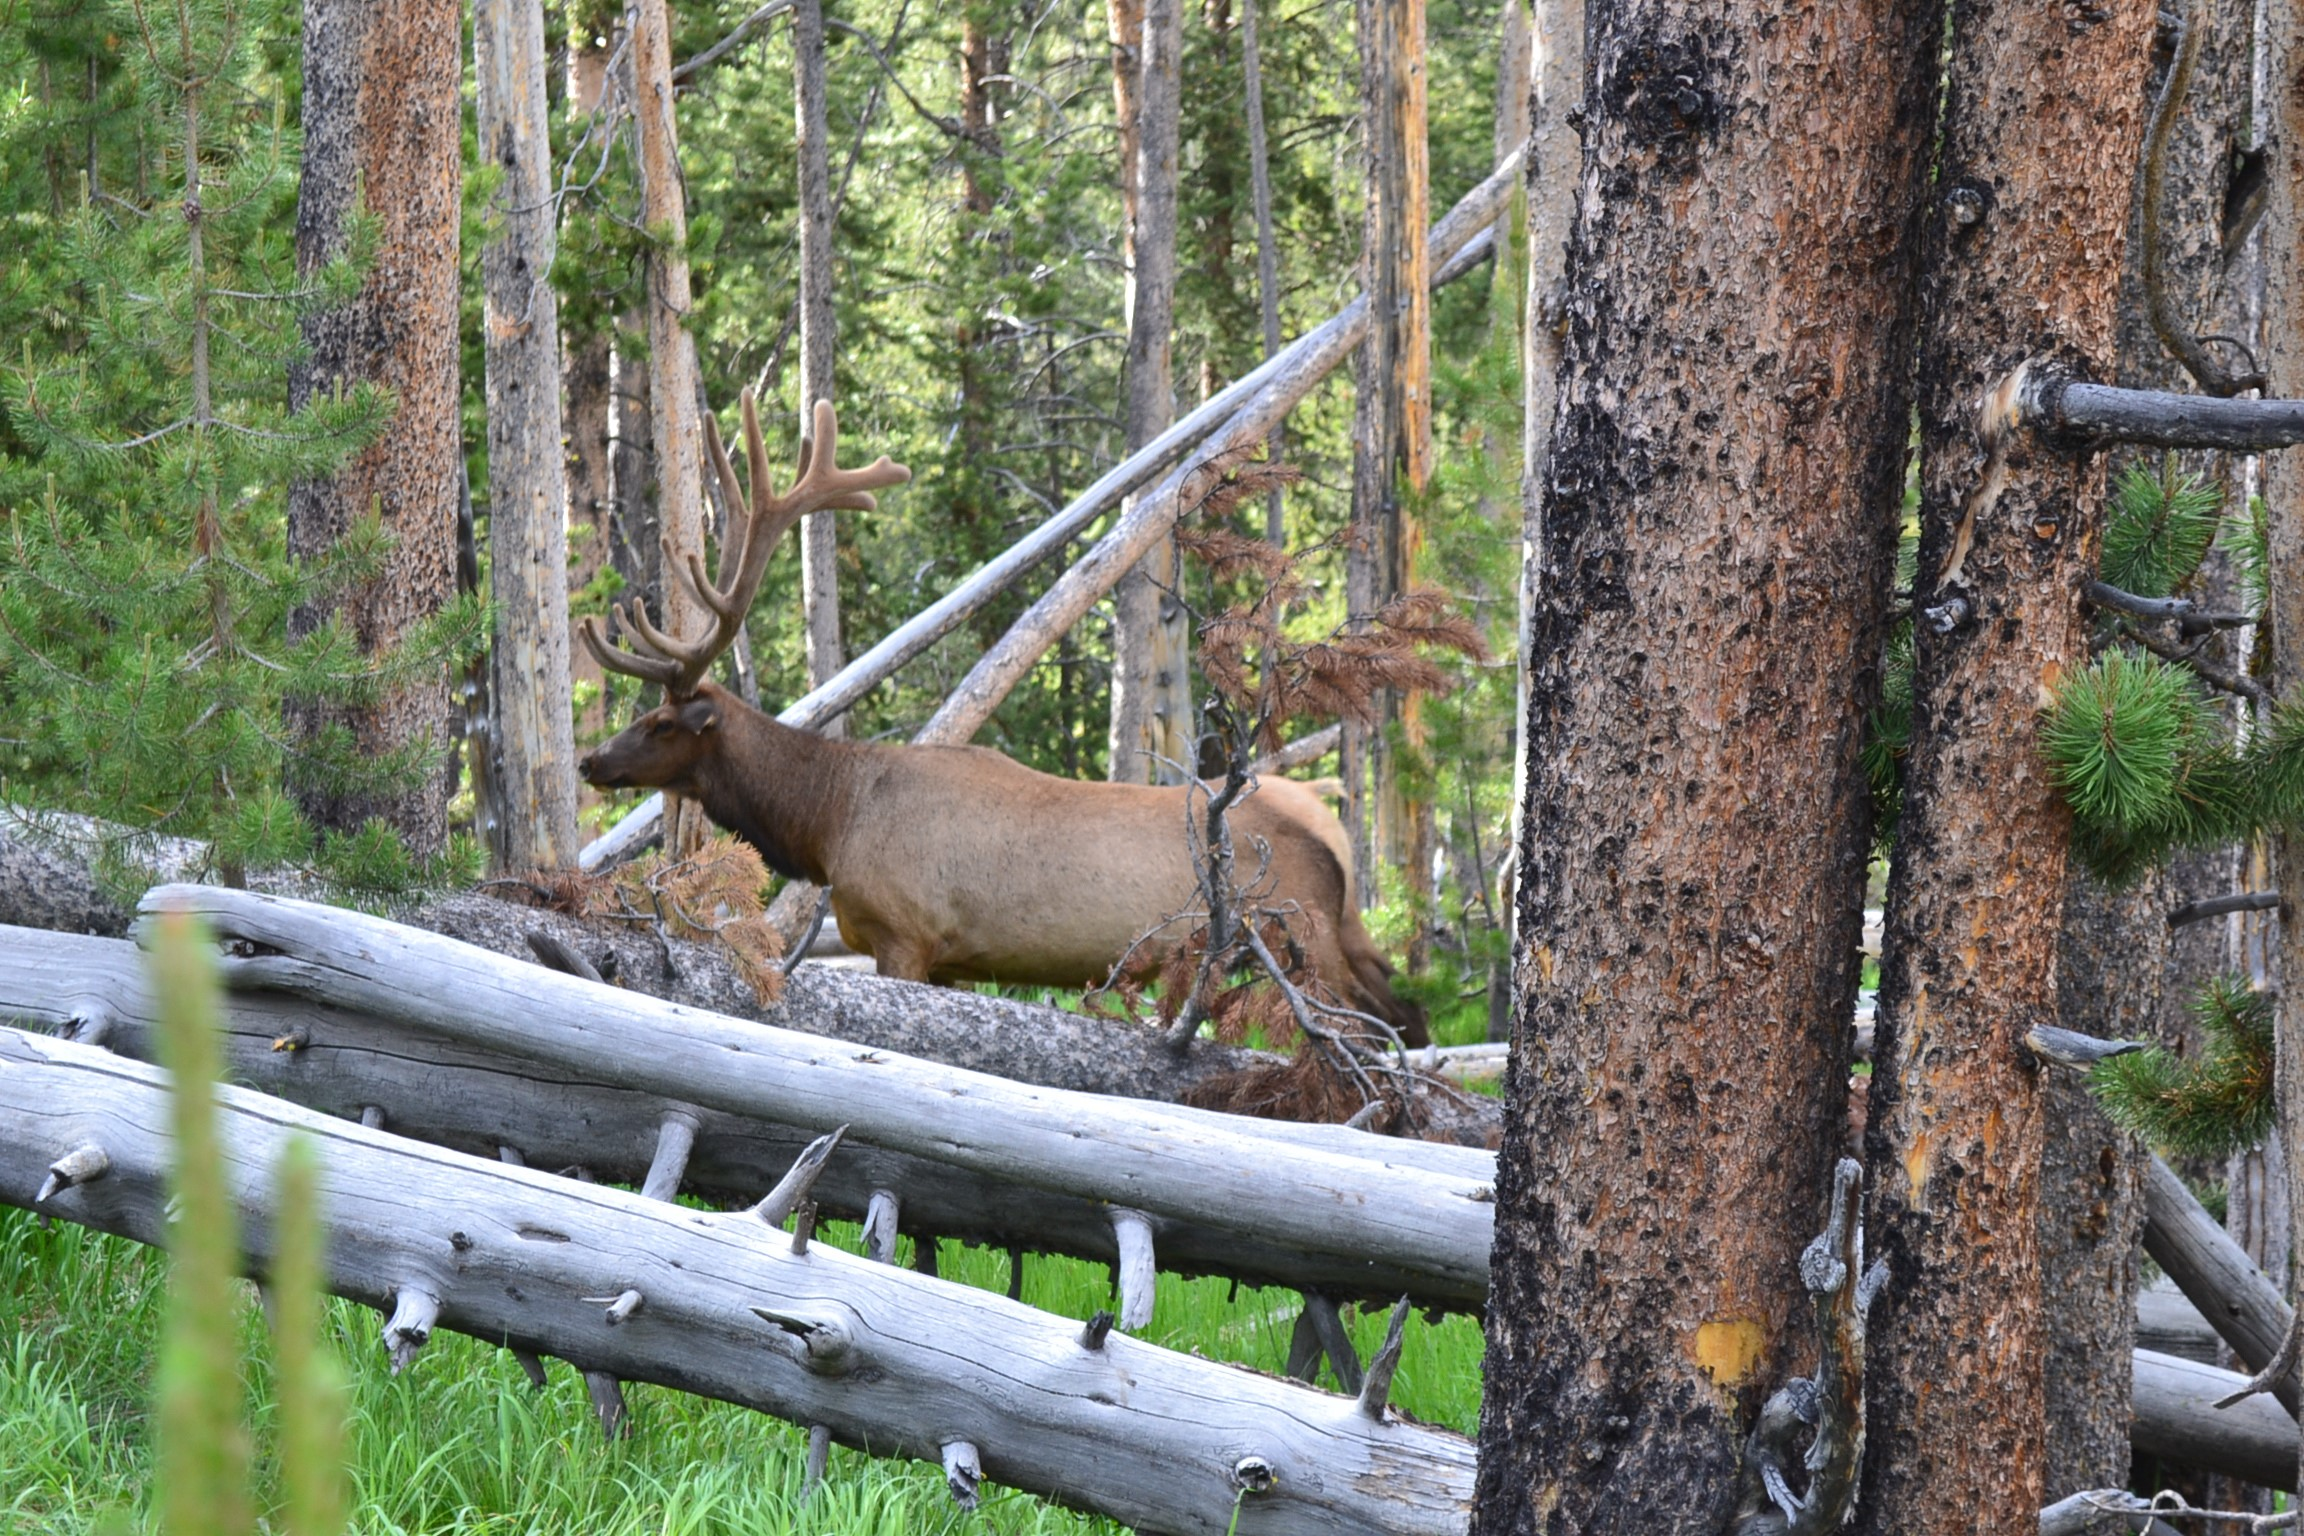 Elk posing in Yellowstone forest.